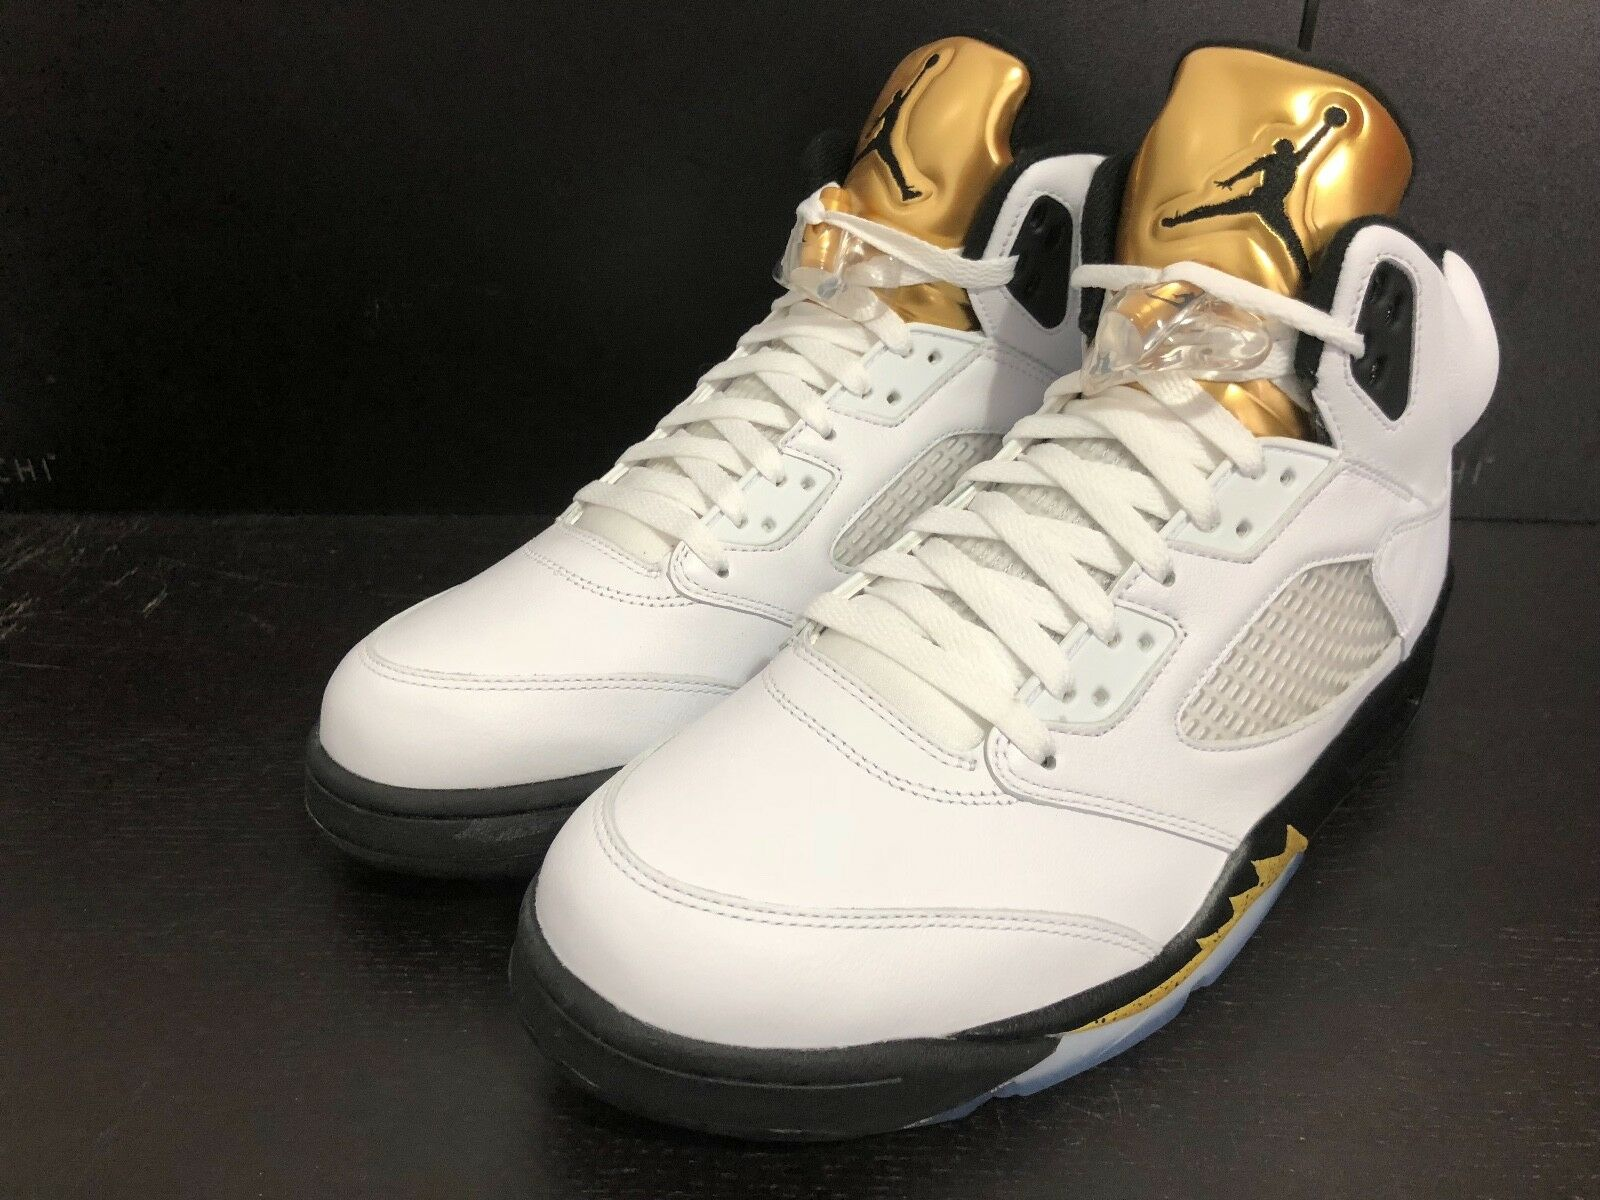 AIR JORDAN 5 RETRO -  gold  - LIMITED - SIZE 11 - 2016